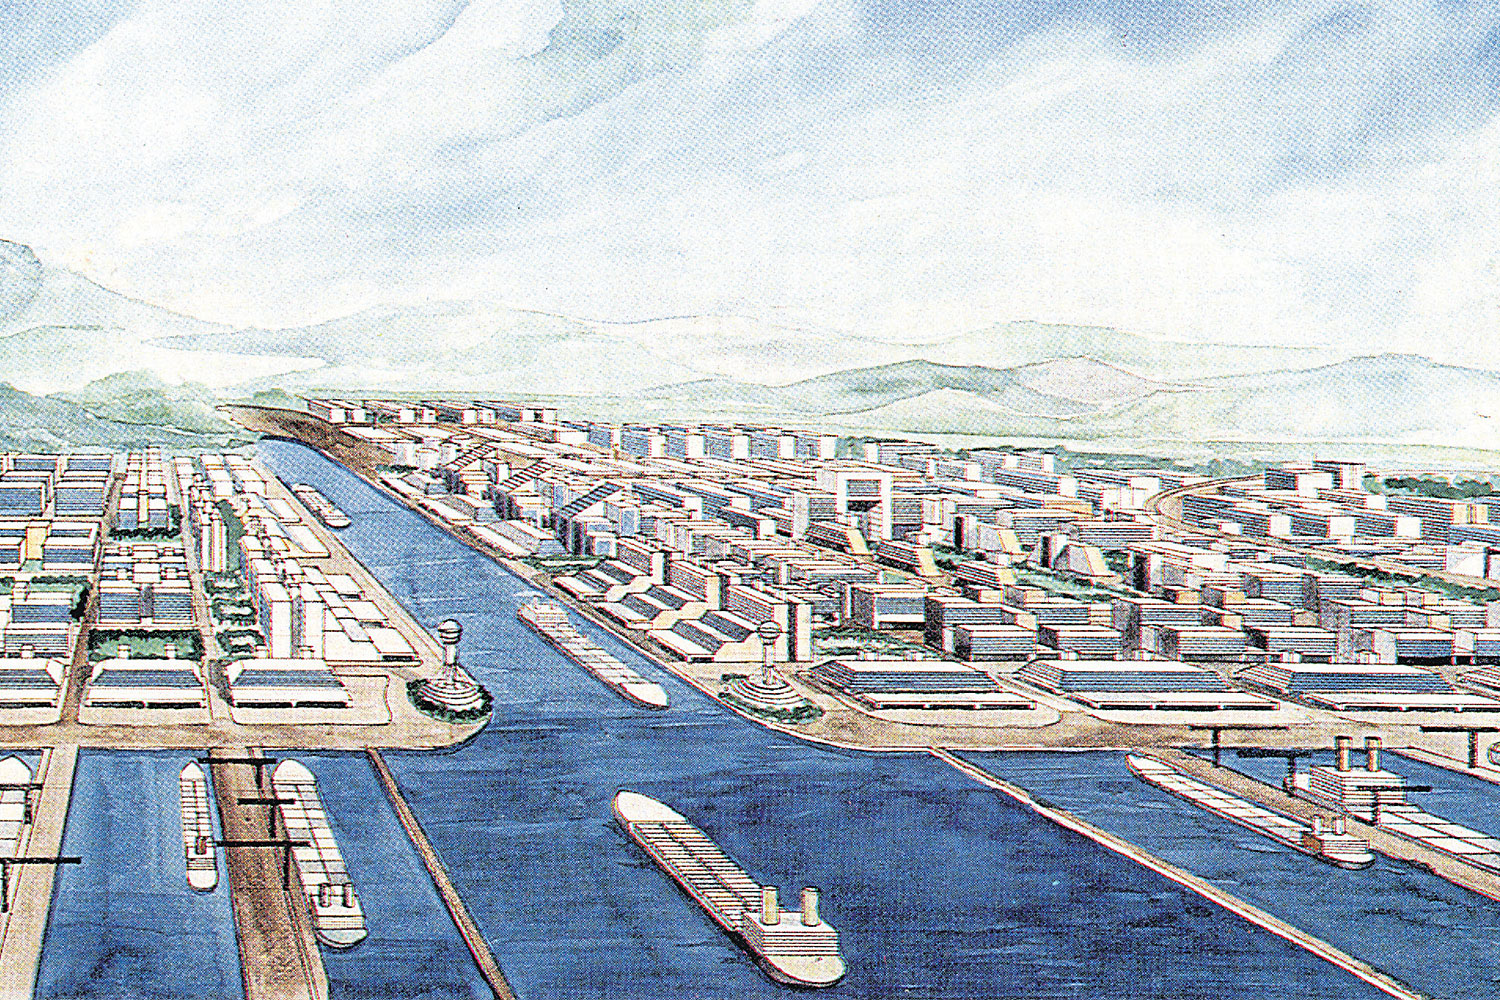 An artist's impression of the Kra Canal project, which has been mulled for centuries without any progress.